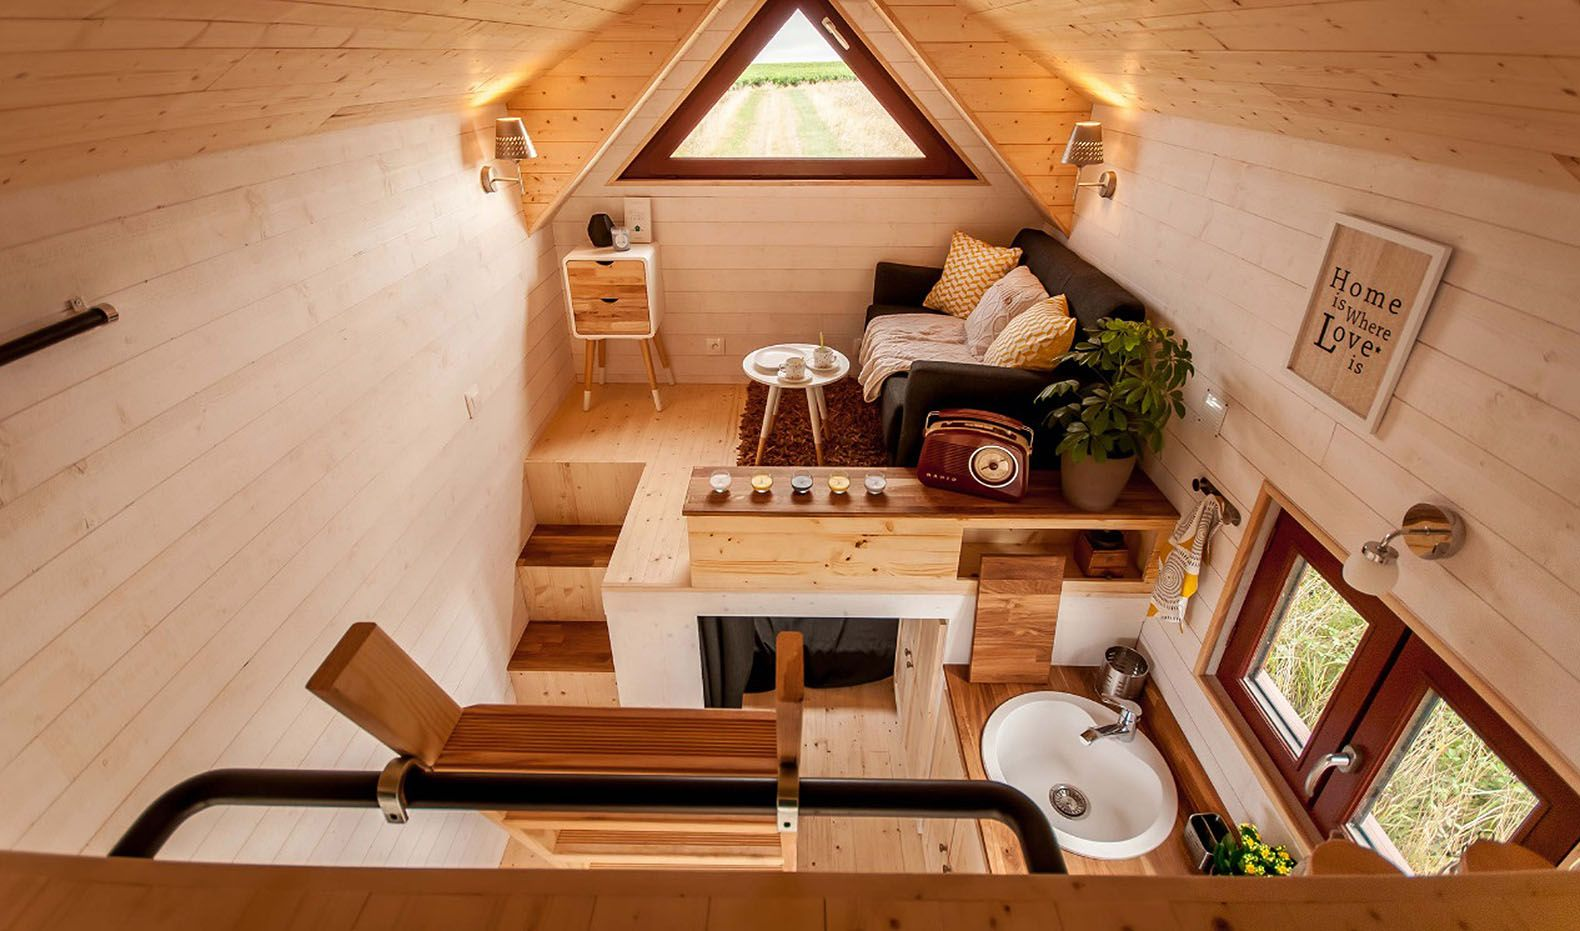 Fully Furnished Tiny House From France Easily Fits A Family Of Three Tiny House Furniture Small House Furniture Tiny House Interior